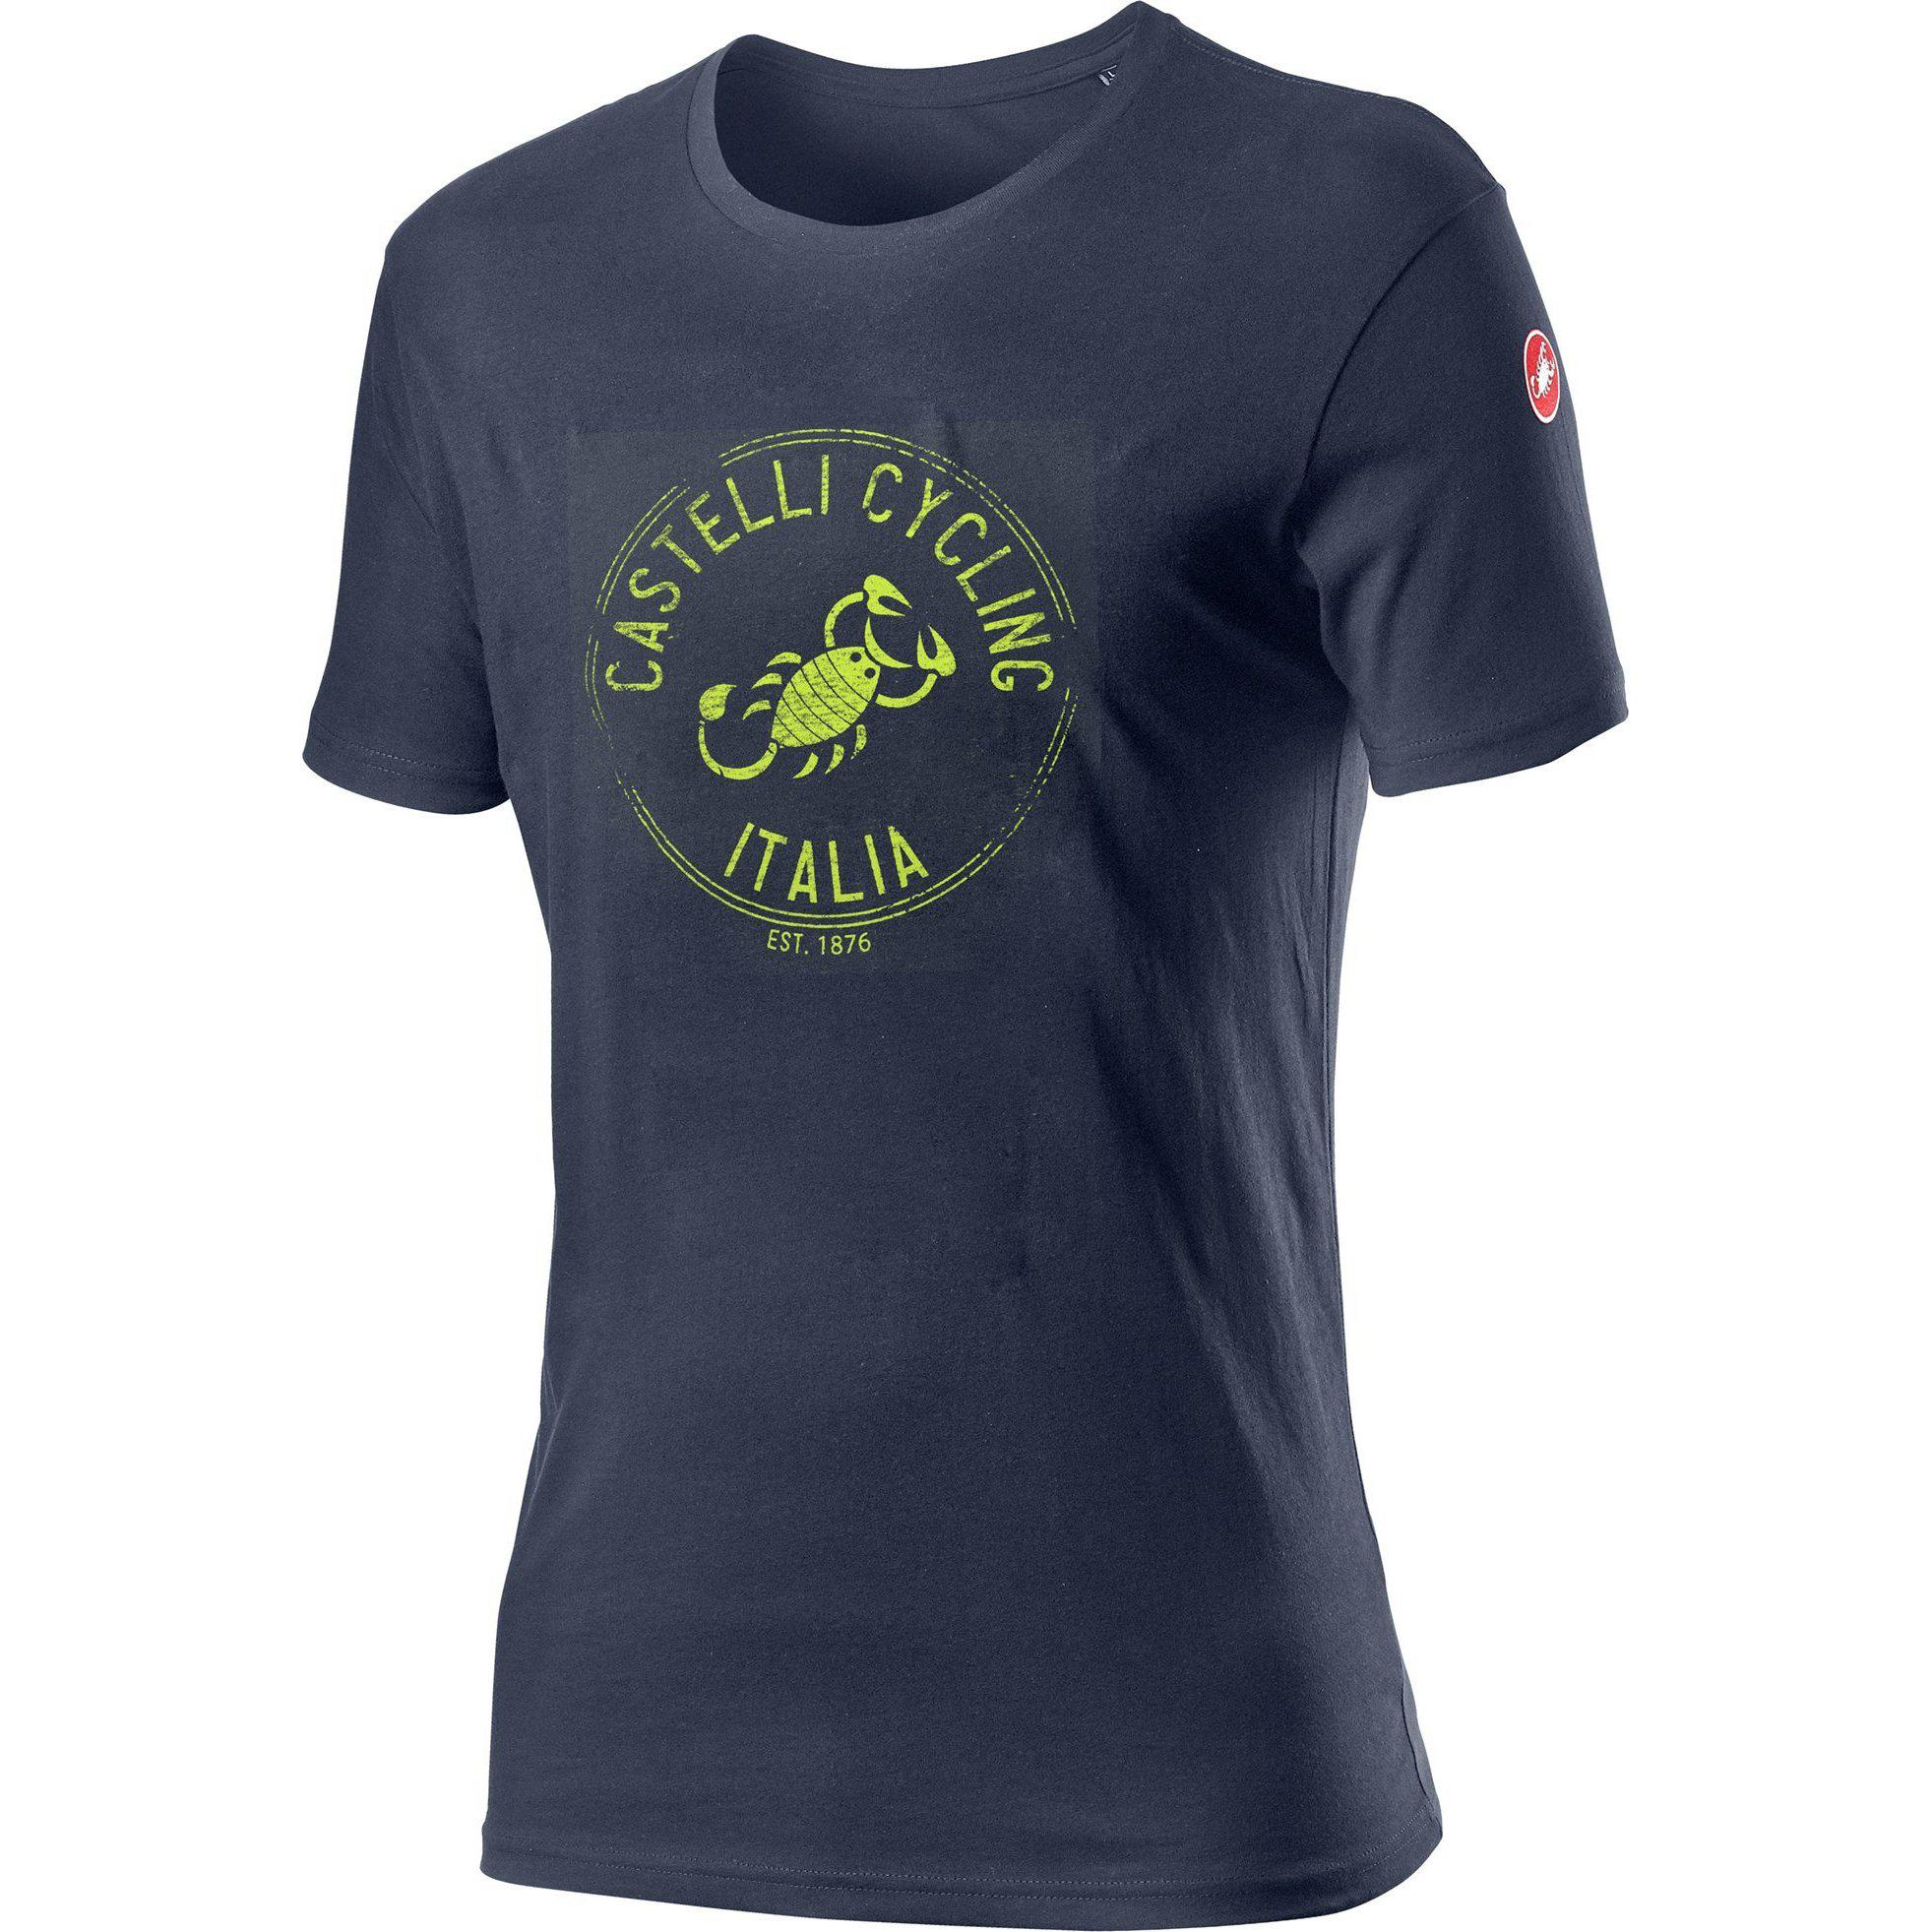 Castelli-Castelli Armando T-shirt-Dark Steel Blue-XS-CS160650701-saddleback-elite-performance-cycling